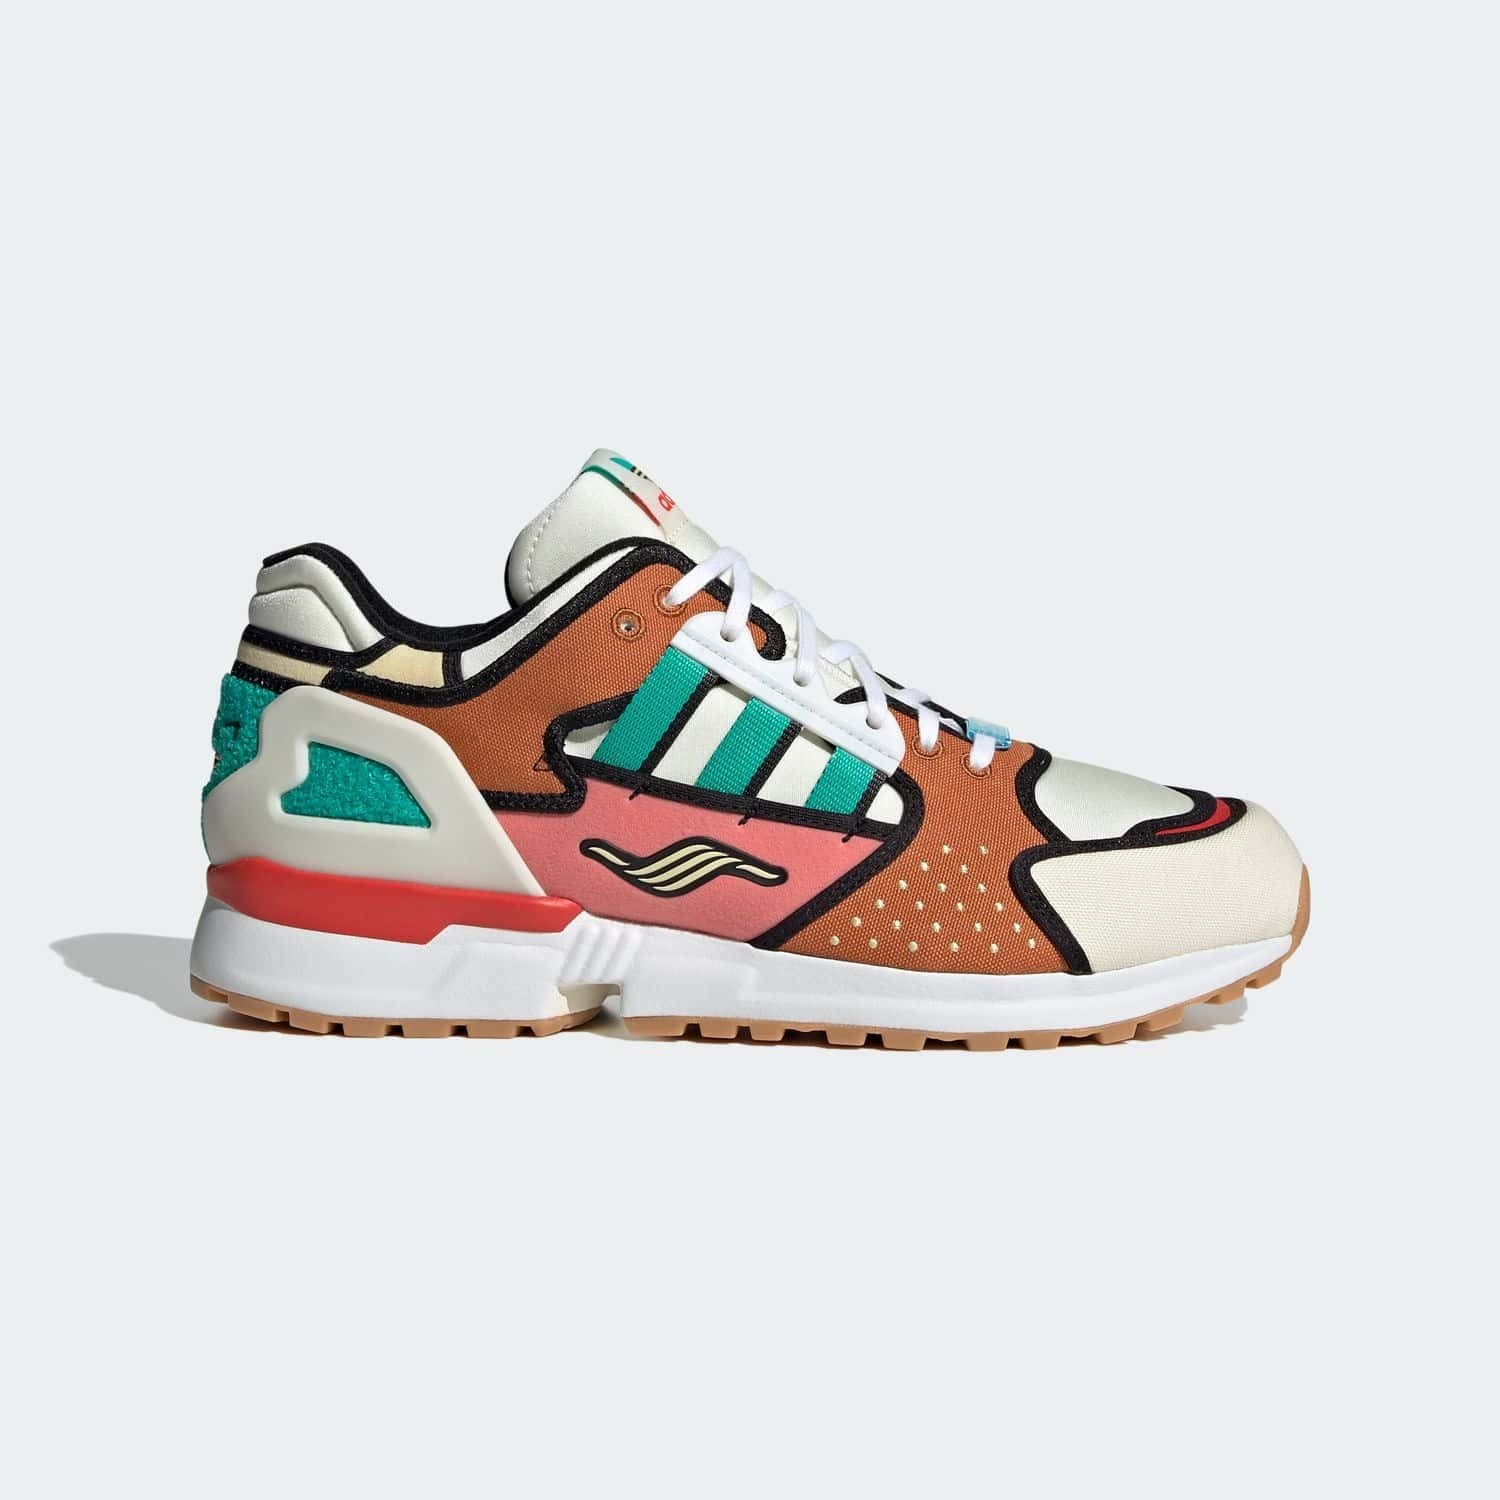 The Simpsons x adidas Originals ZX 10000 'Krusty Burger' - A-ZX Series}